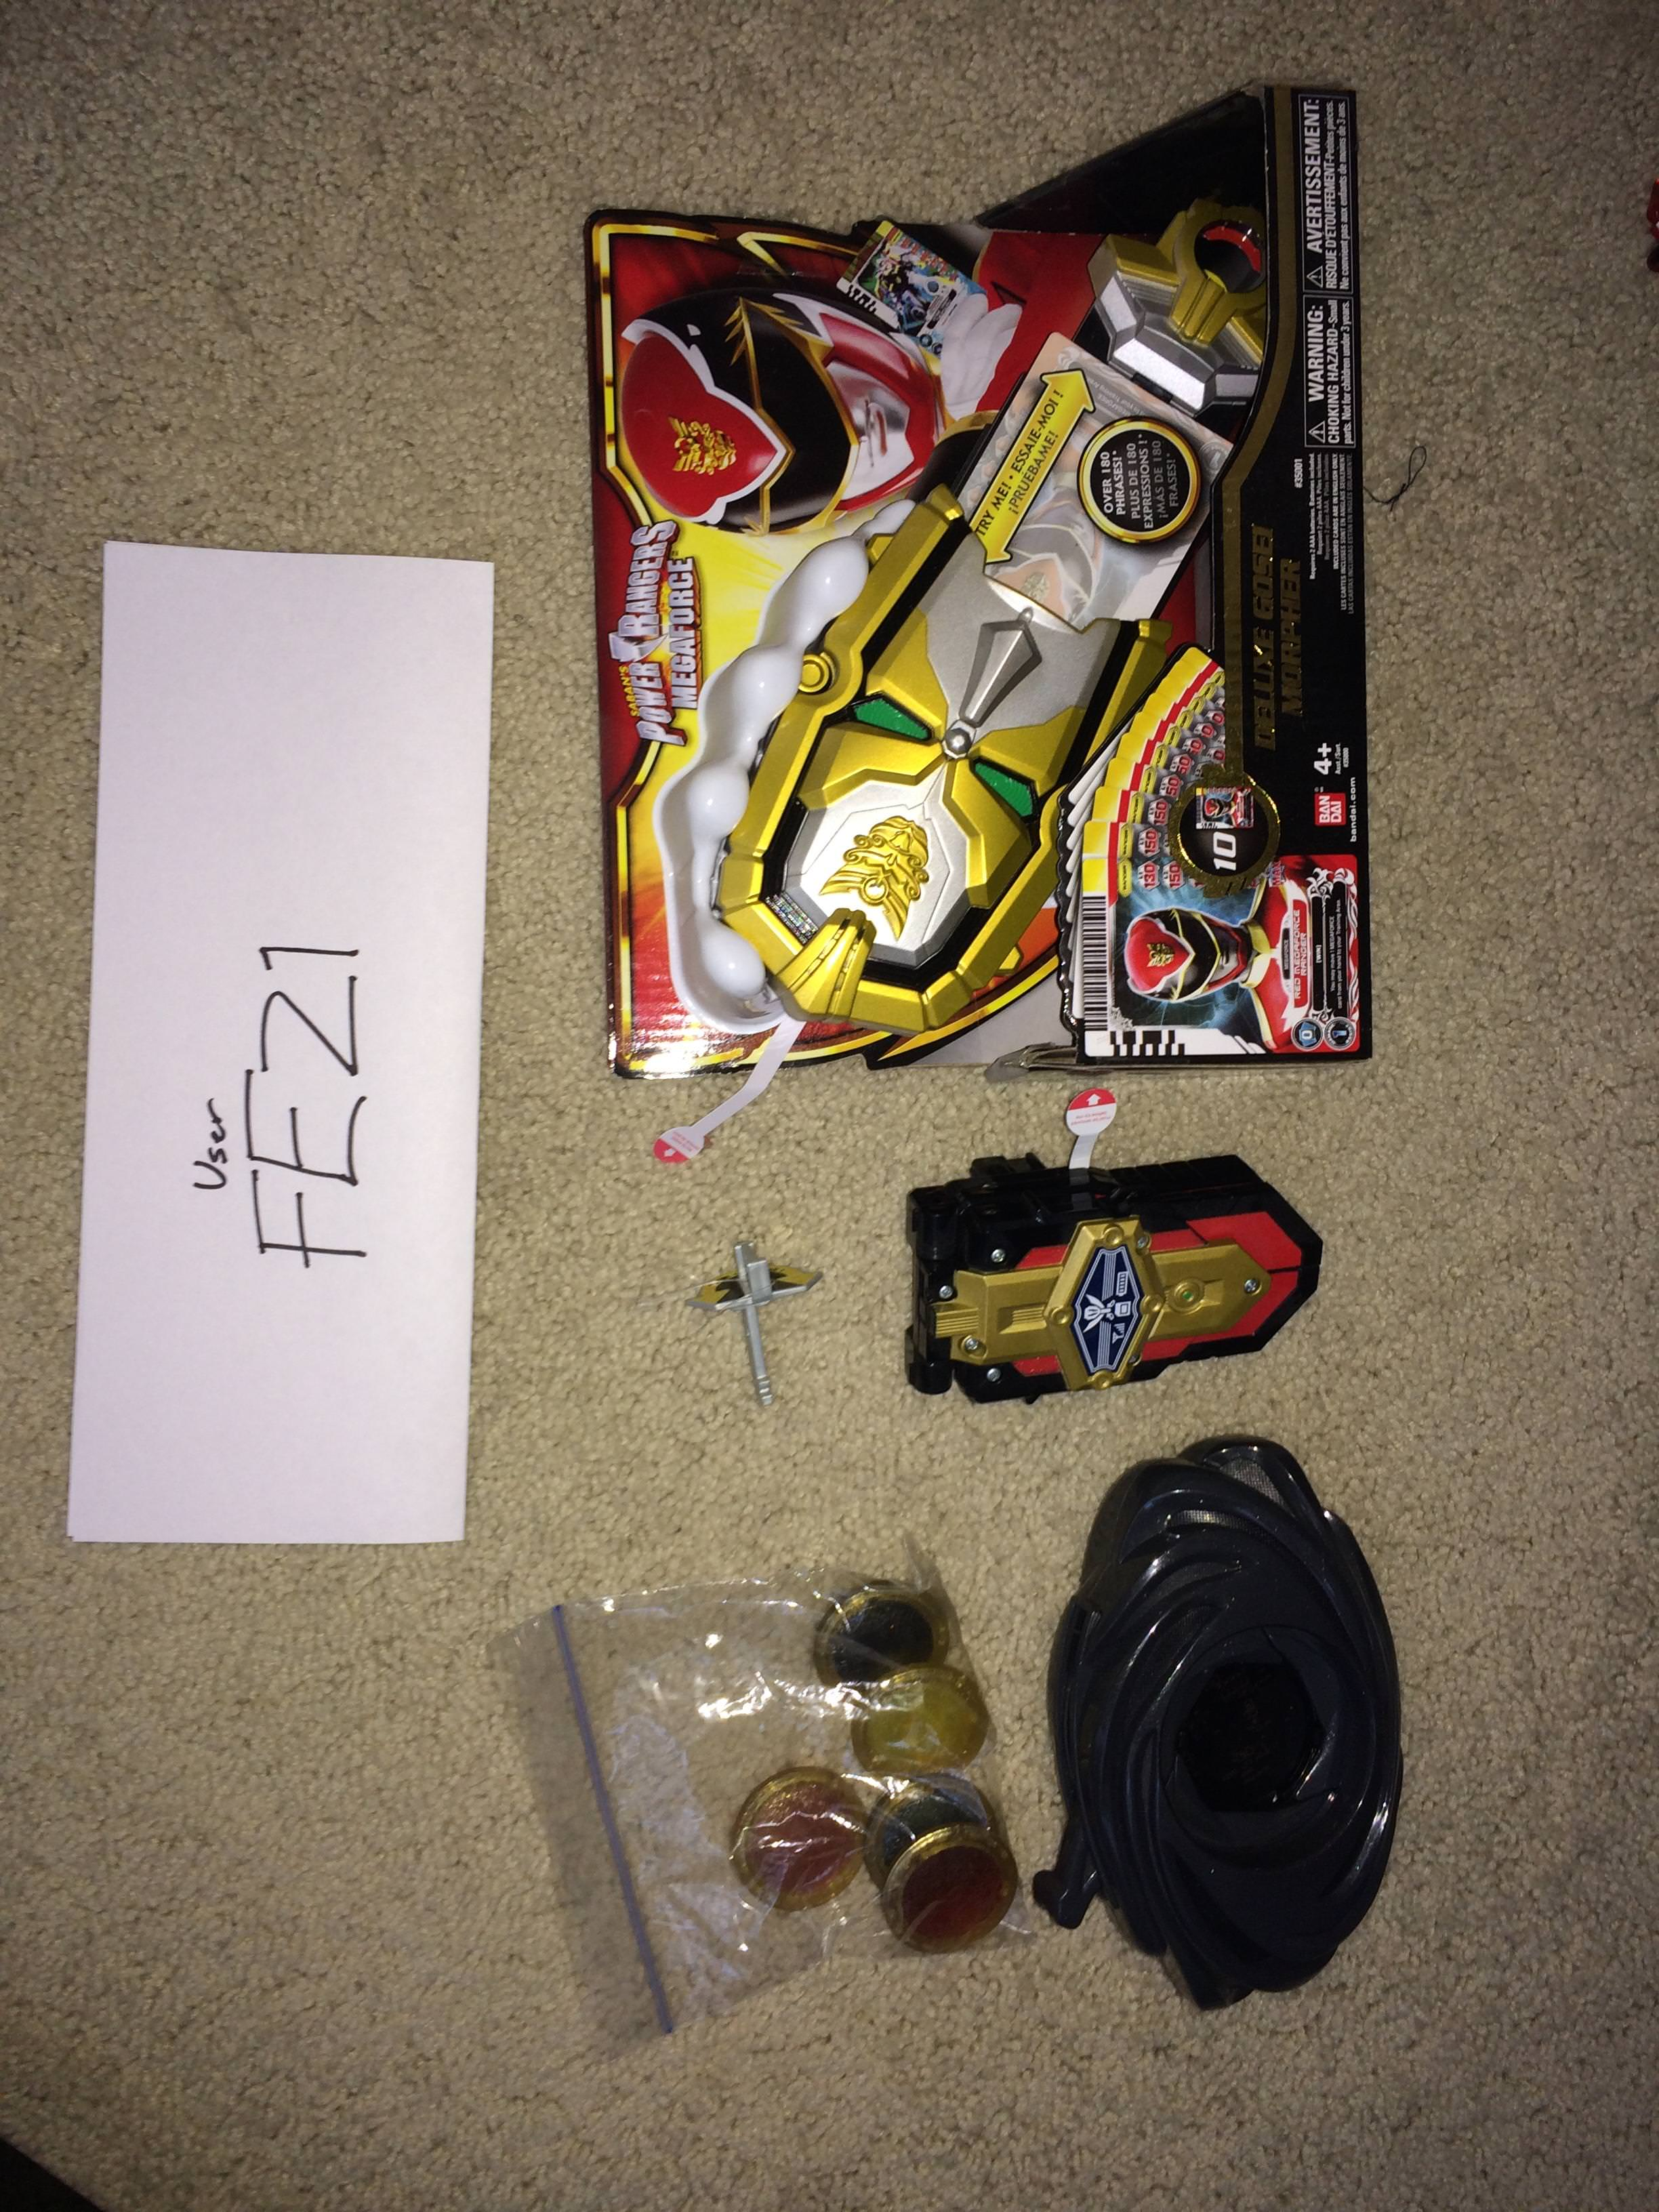 turbo falcon megazord instructions